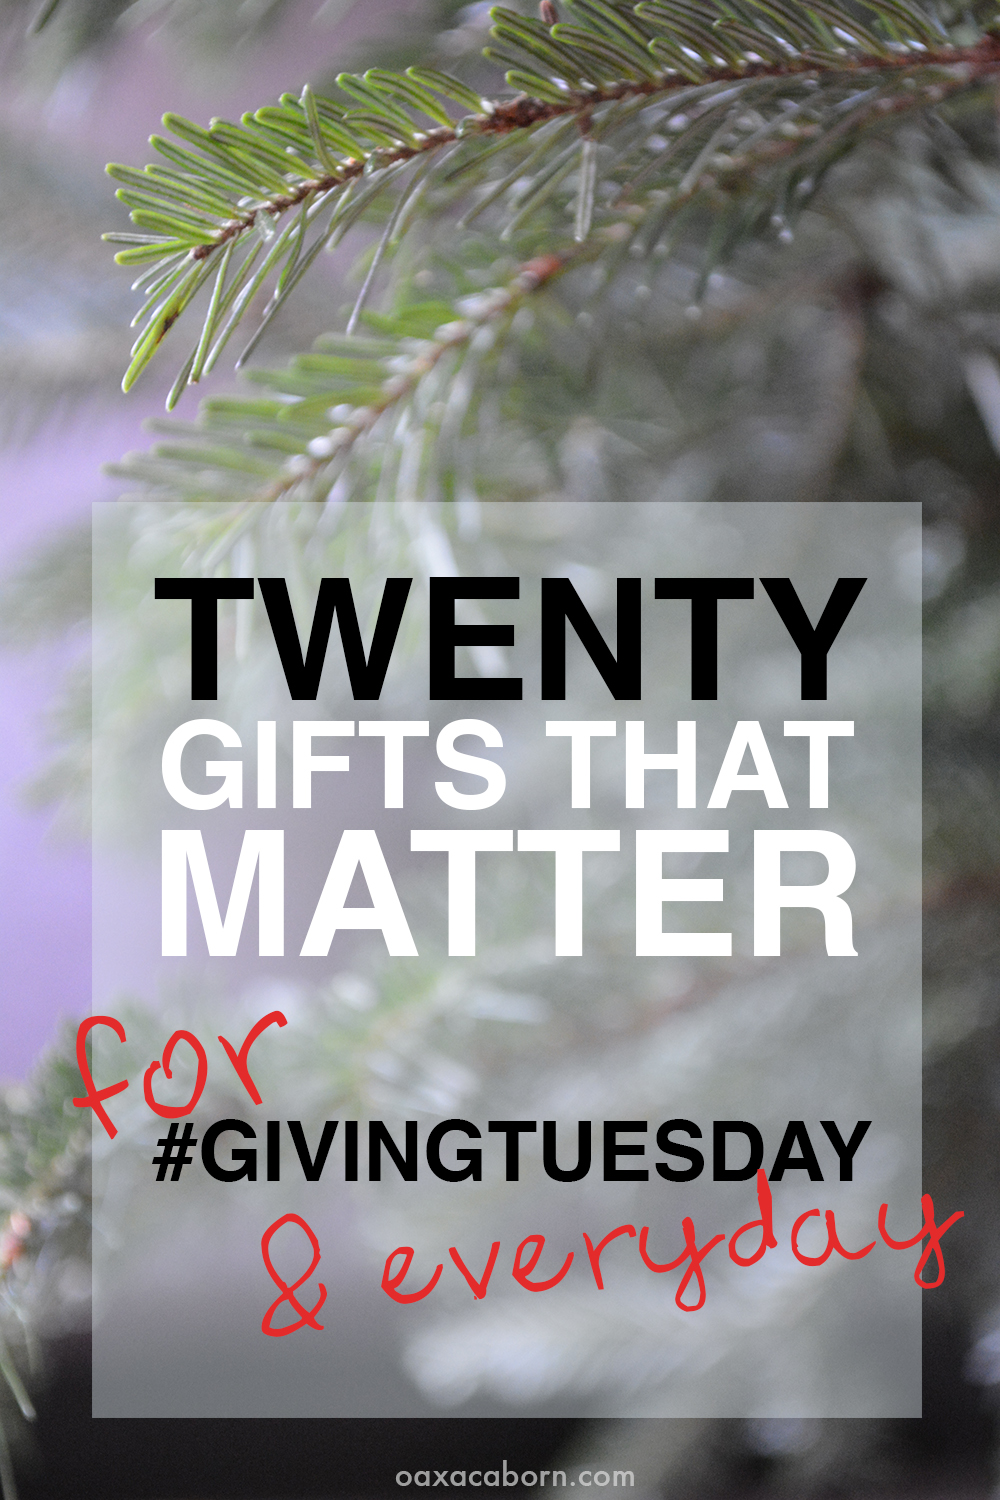 20 Charitable Christmas Gift Ideas That Make a Difference, for #GIVINGTUESDAY and Everyday (via Oaxacaborn.com)